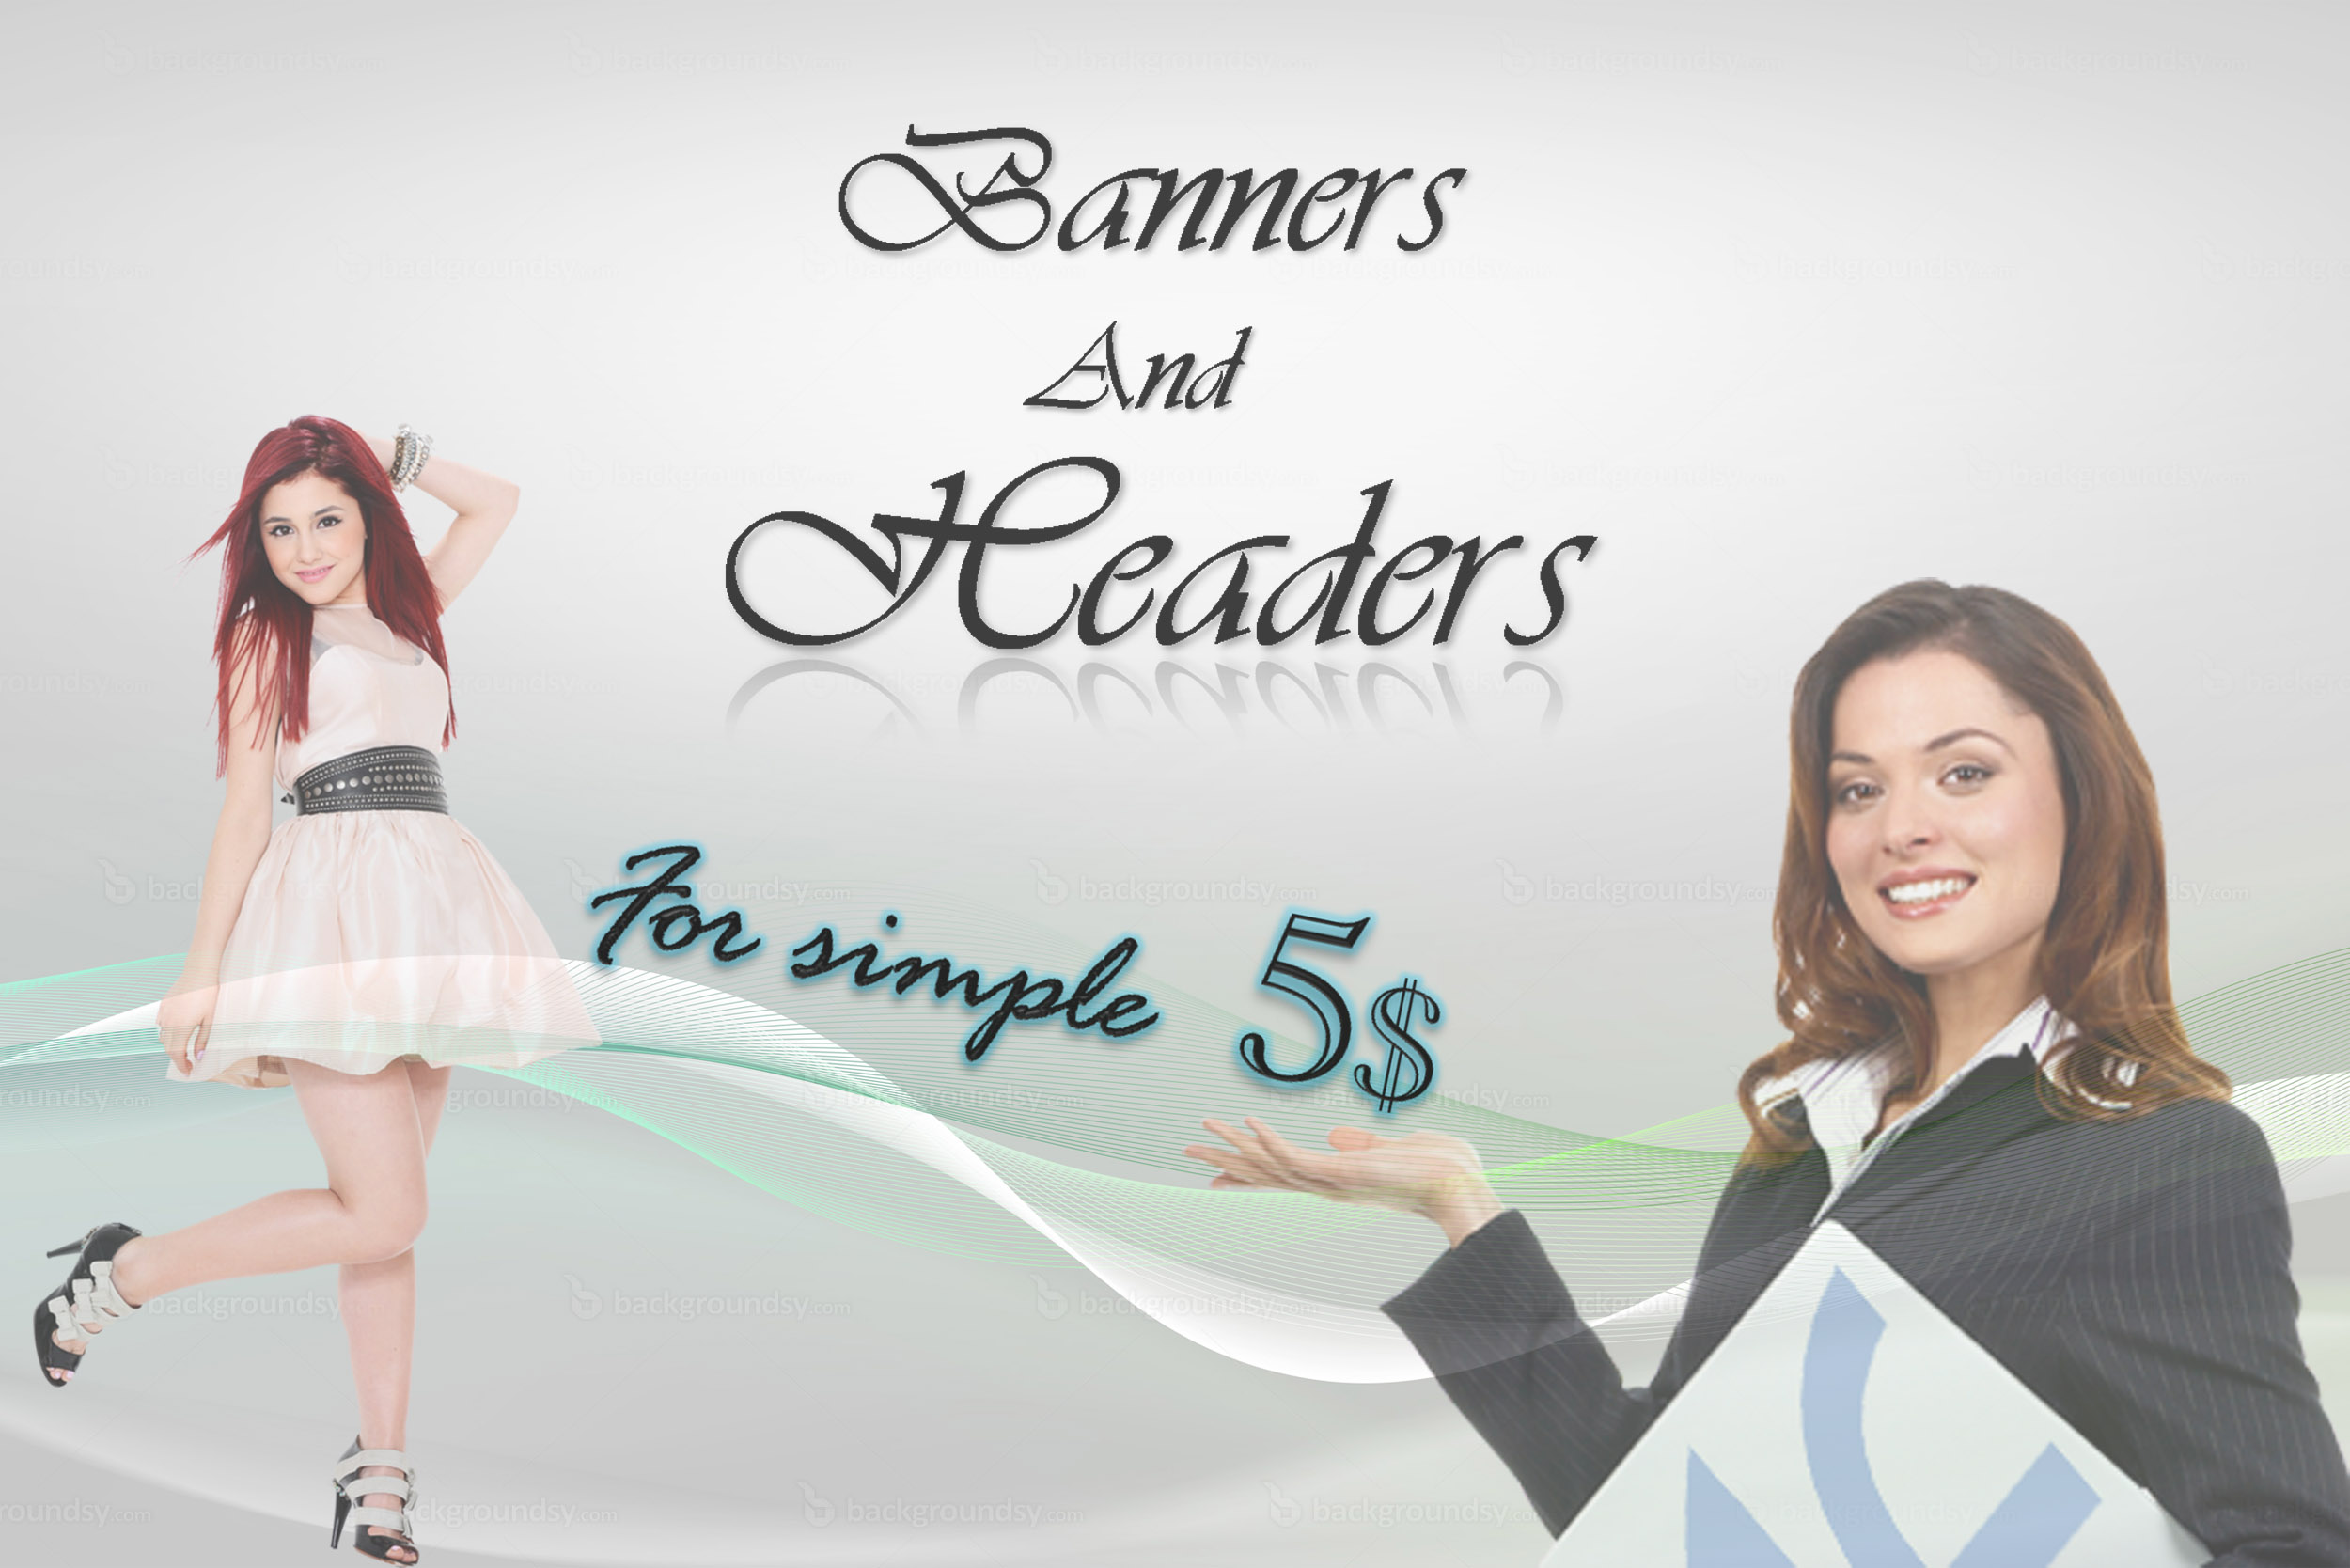 Any type Banners or Headers